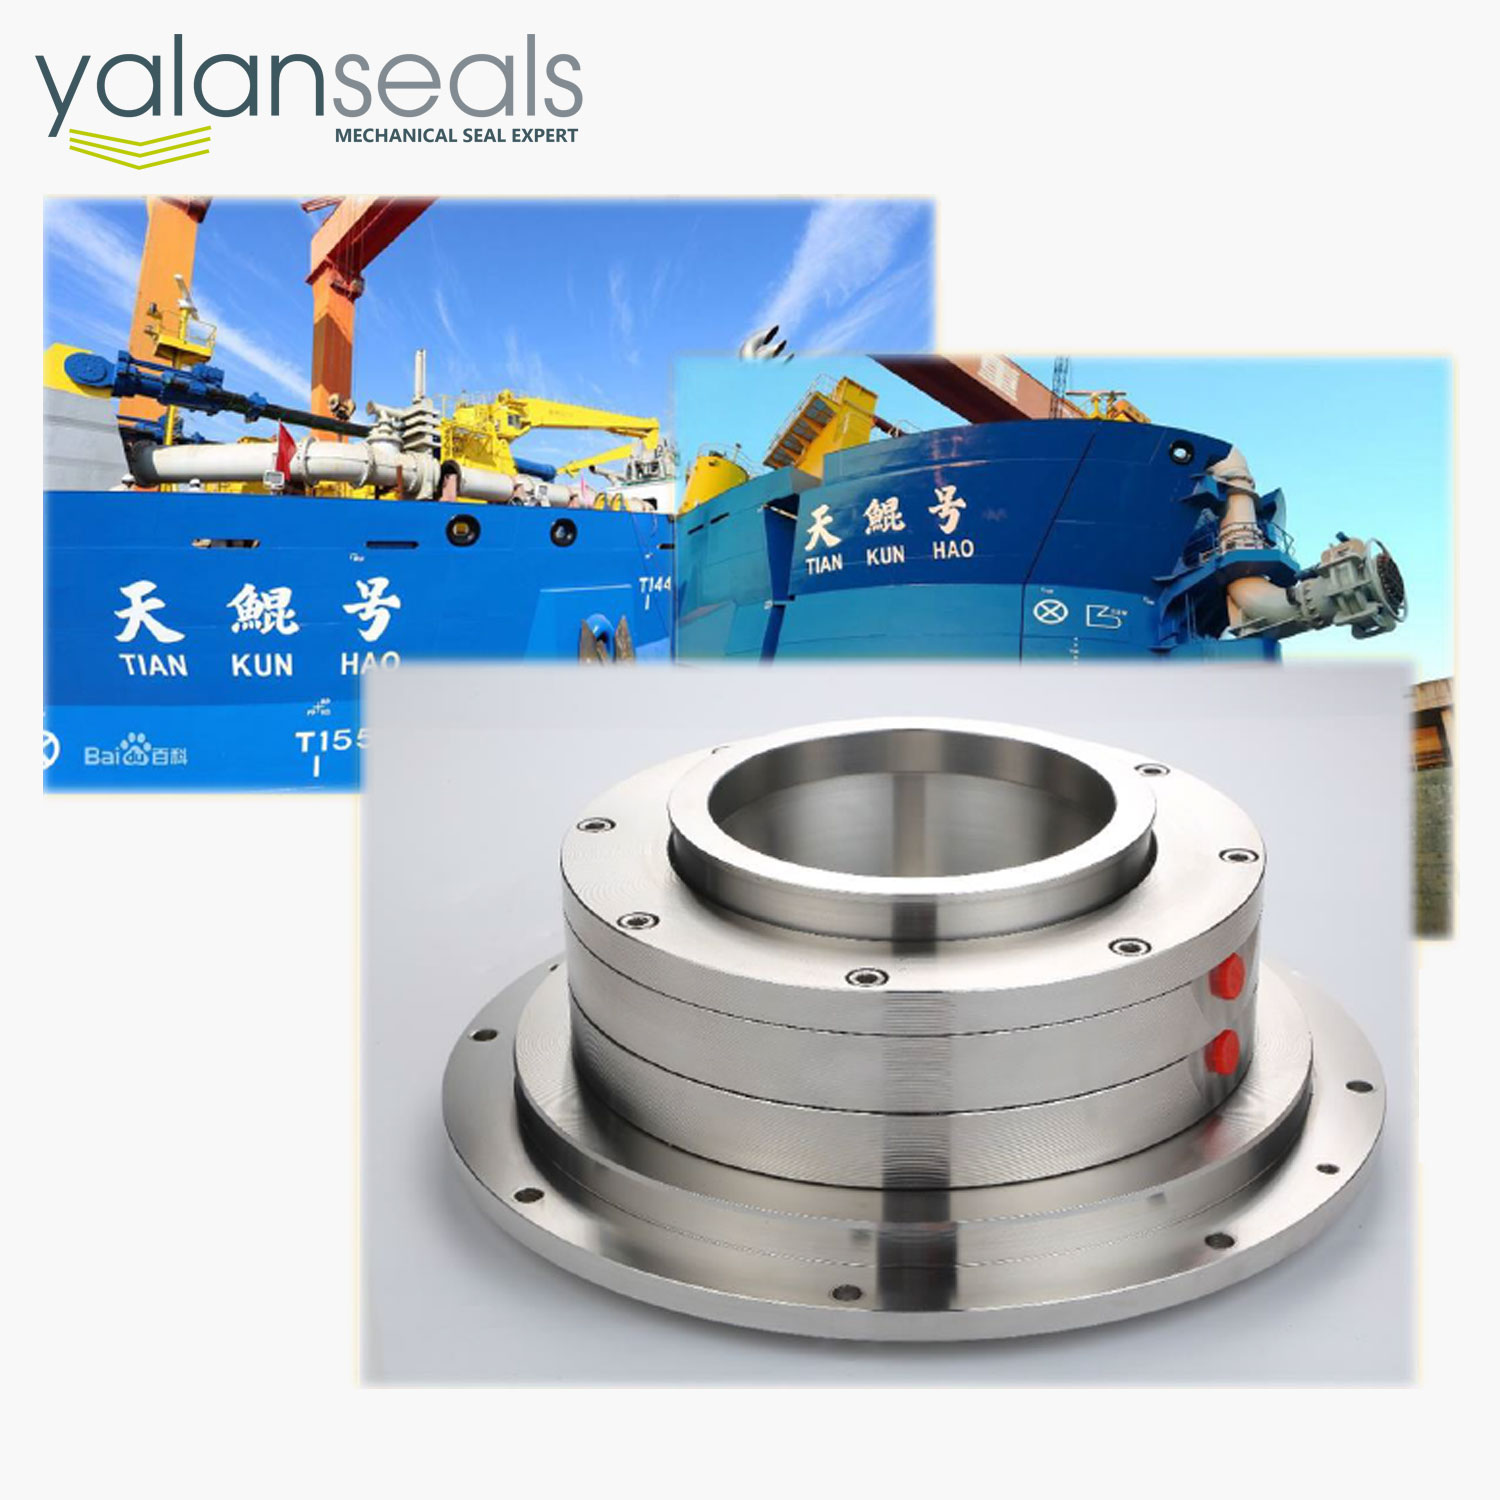 SBB Cartridge Mechanical Seal for Dredgers (the Biggest Dredger Ship in Asia, Tian Kun Hao)